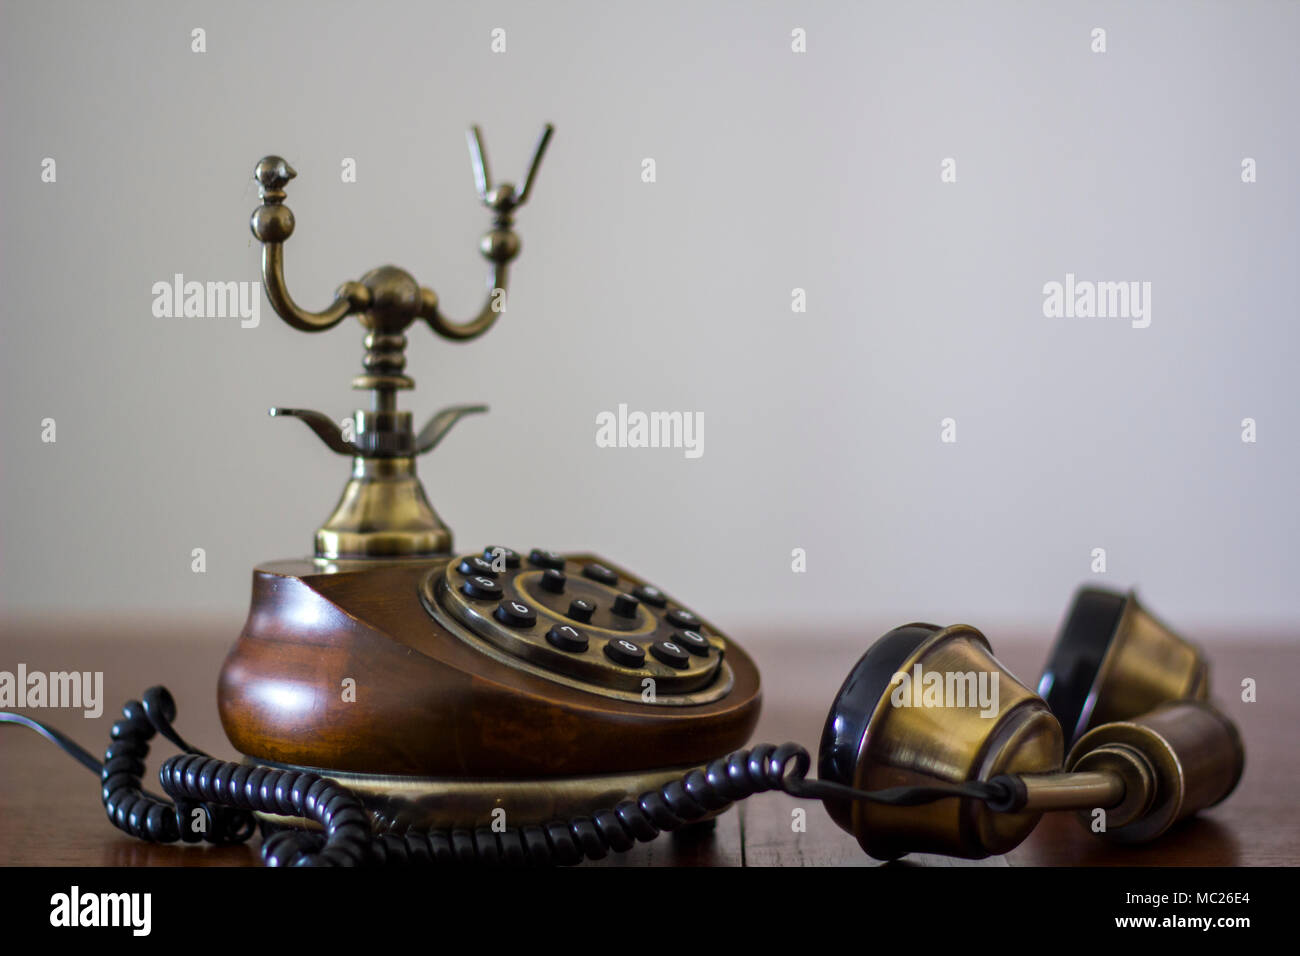 Vintage phone with handset down - Stock Image